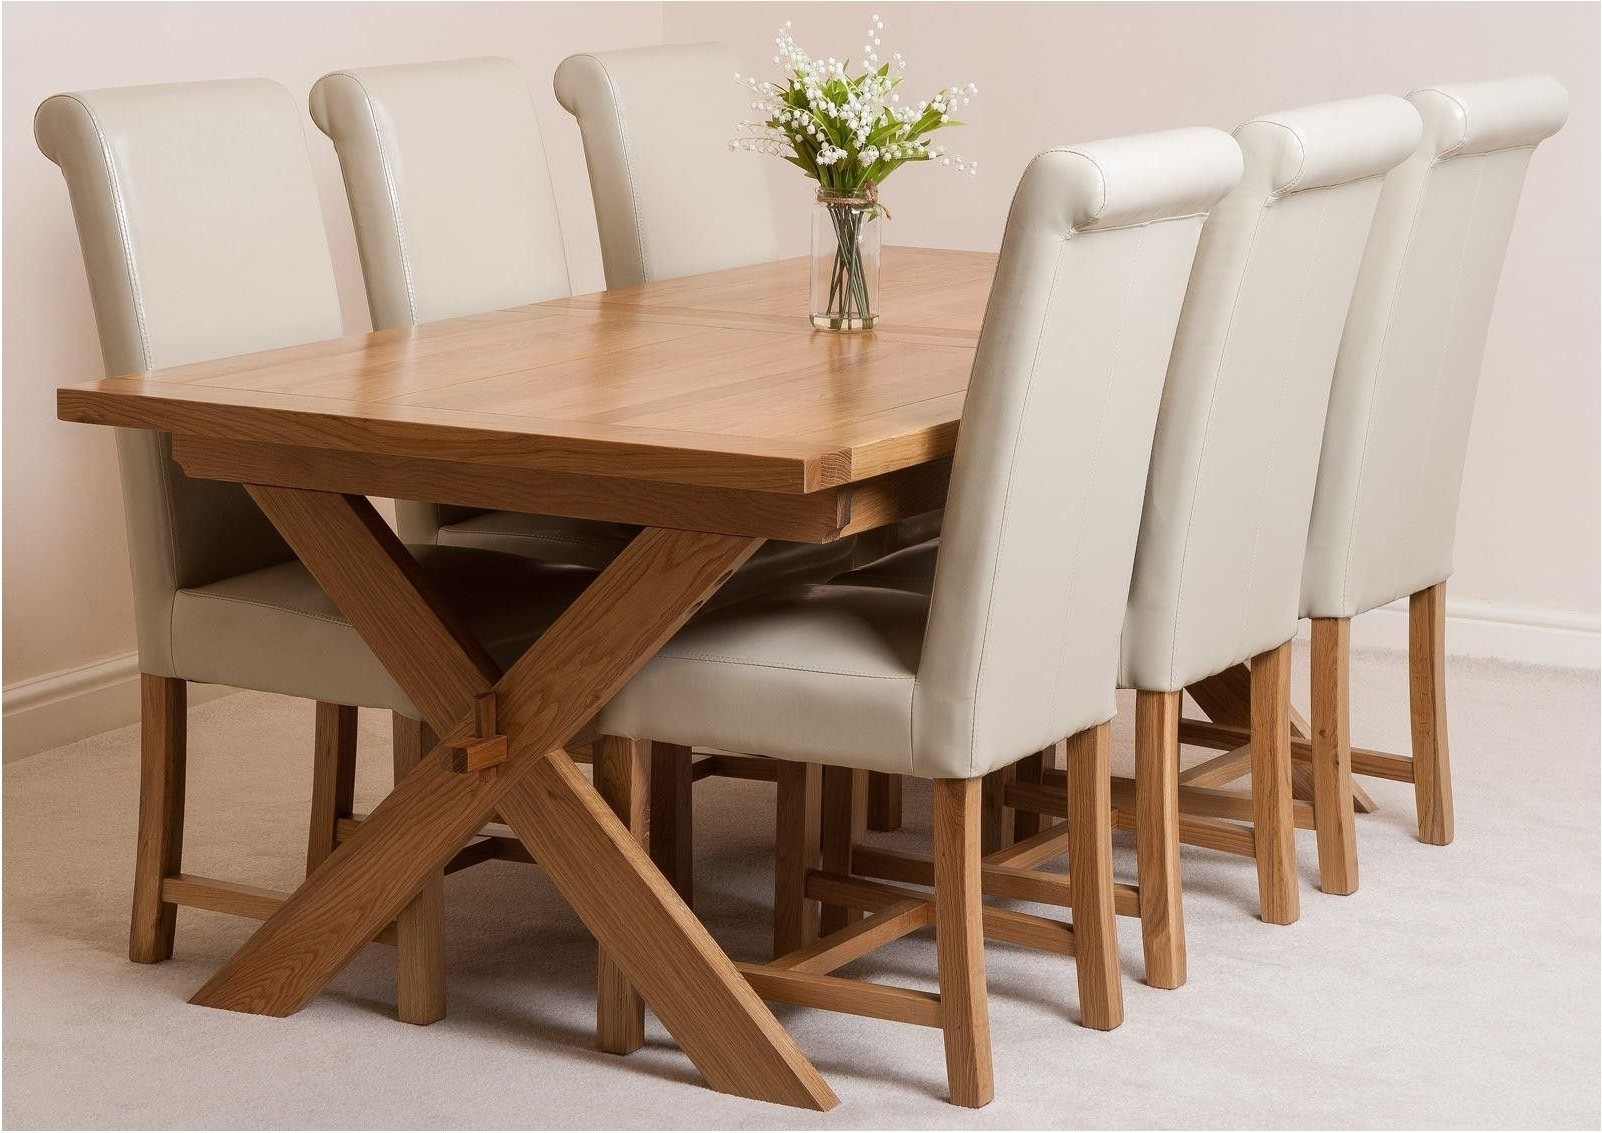 Widely Used Extending Dining Tables And Chairs Regarding Breathtaking Vermont Extending Oak Dining Table With 6 Black Lola (View 25 of 25)